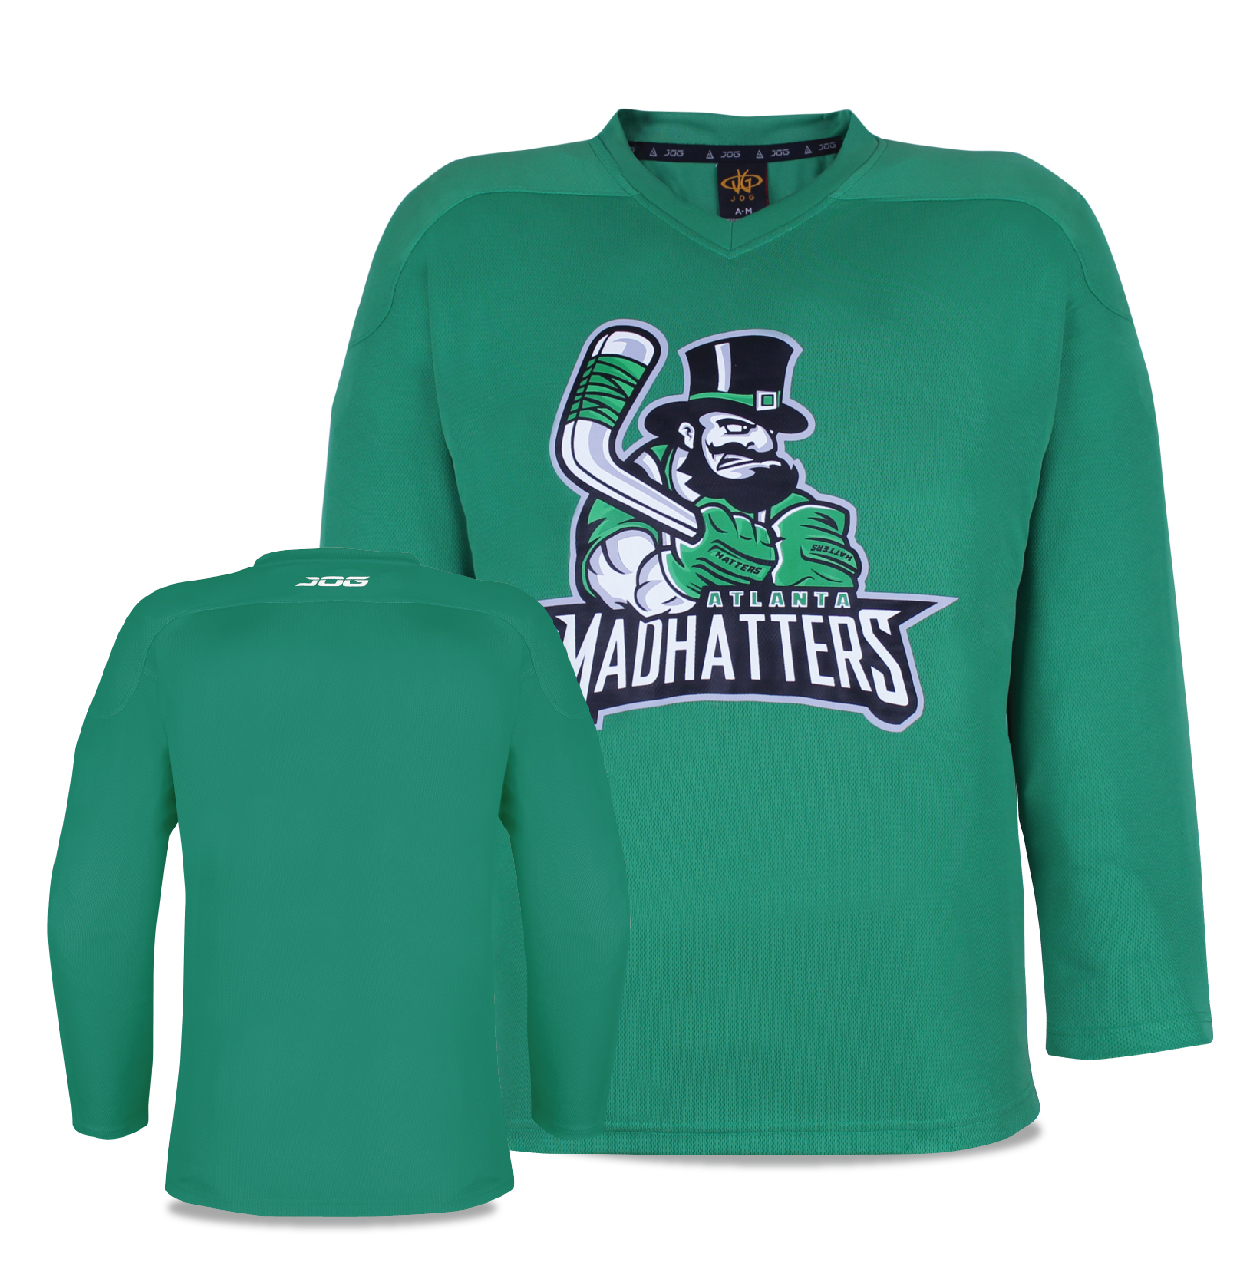 Madhatters custom practice jerseys with screen printed front logo.